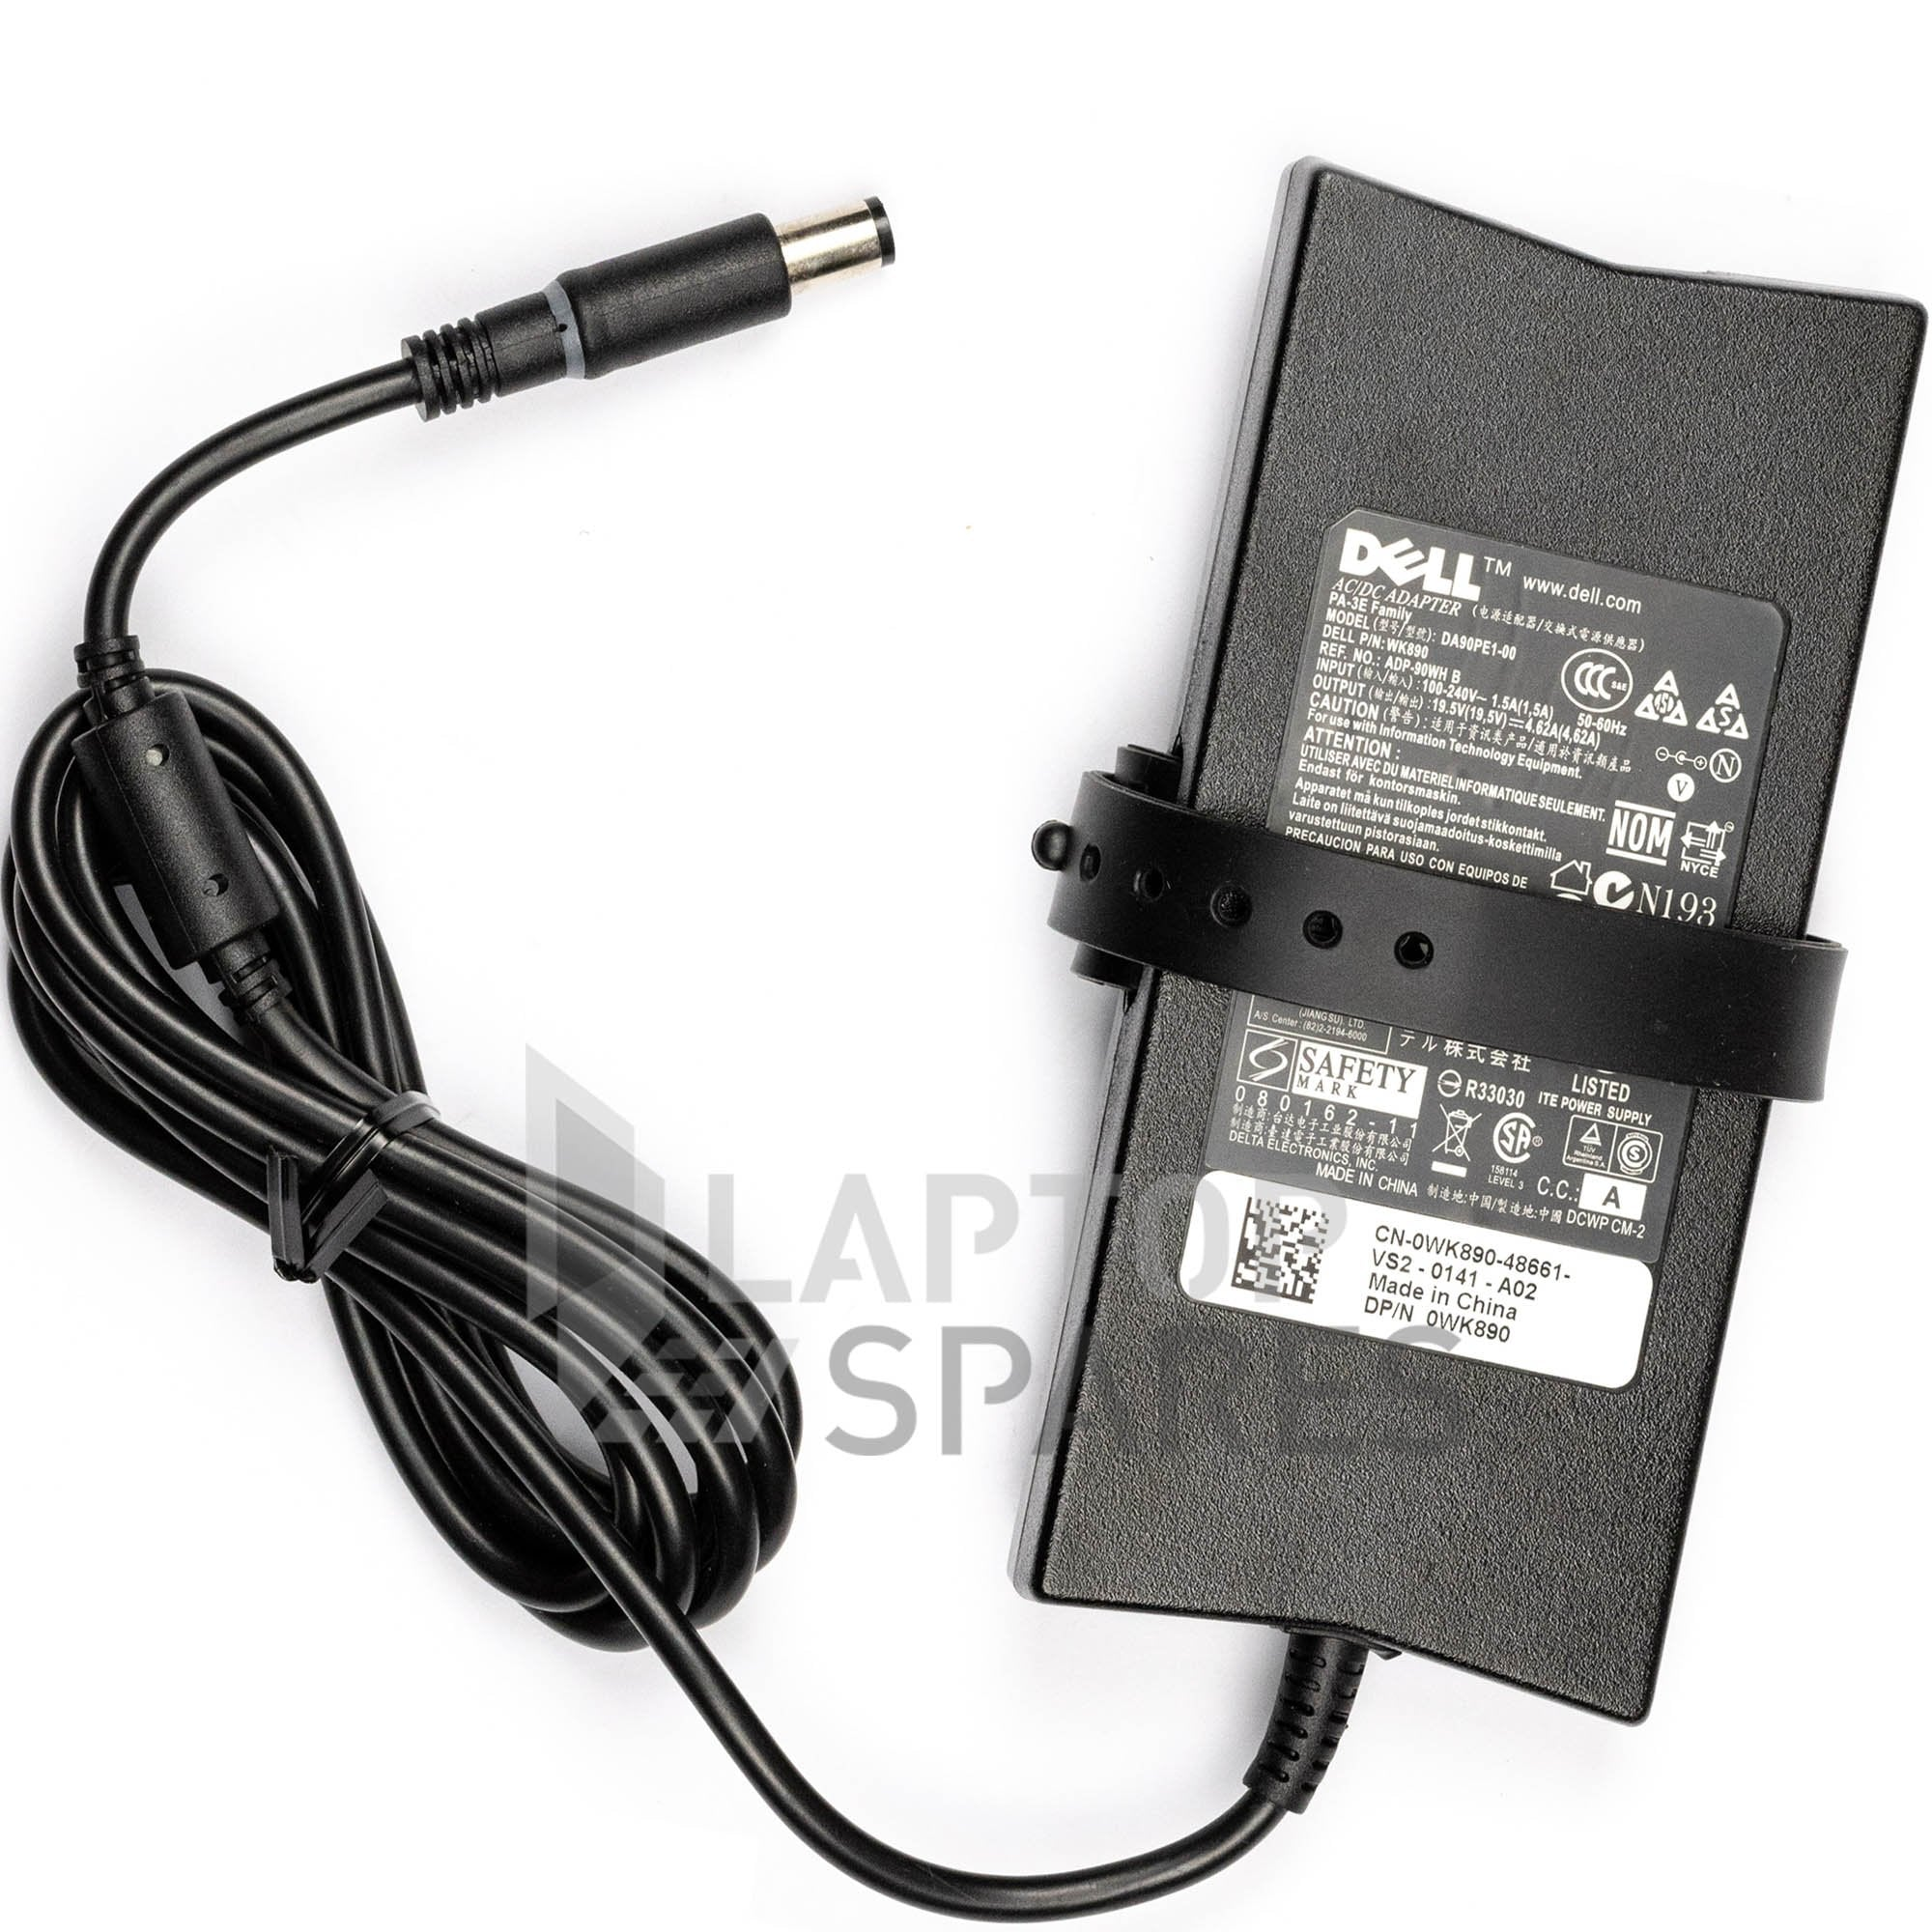 Dell Latitude 100L 12 E5250 Laptop Slim AC Adapter Charger